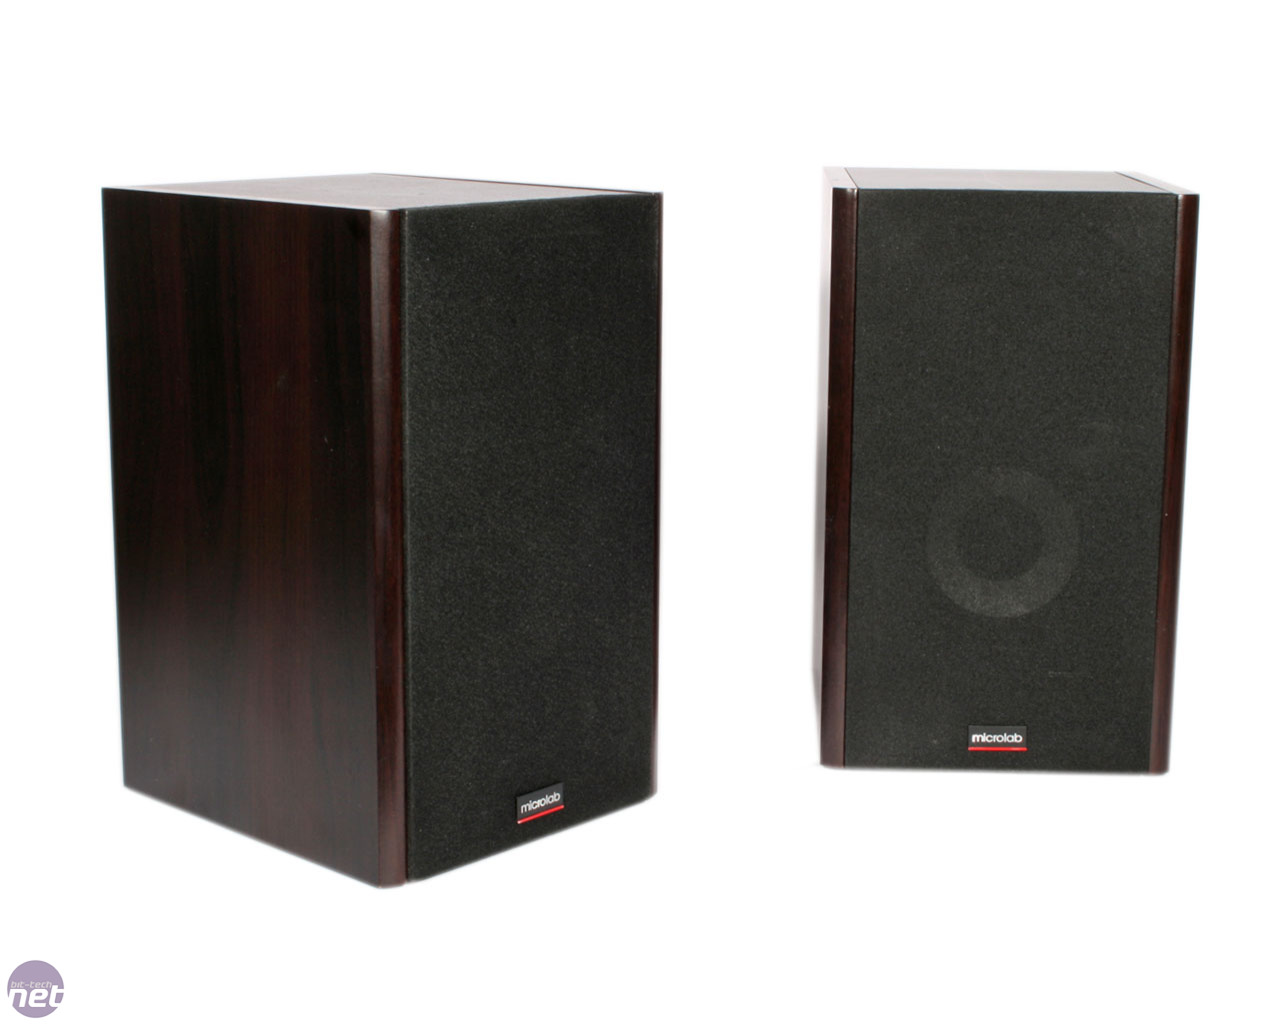 Microlab Solo1c Speakers Review Bit Tech Net